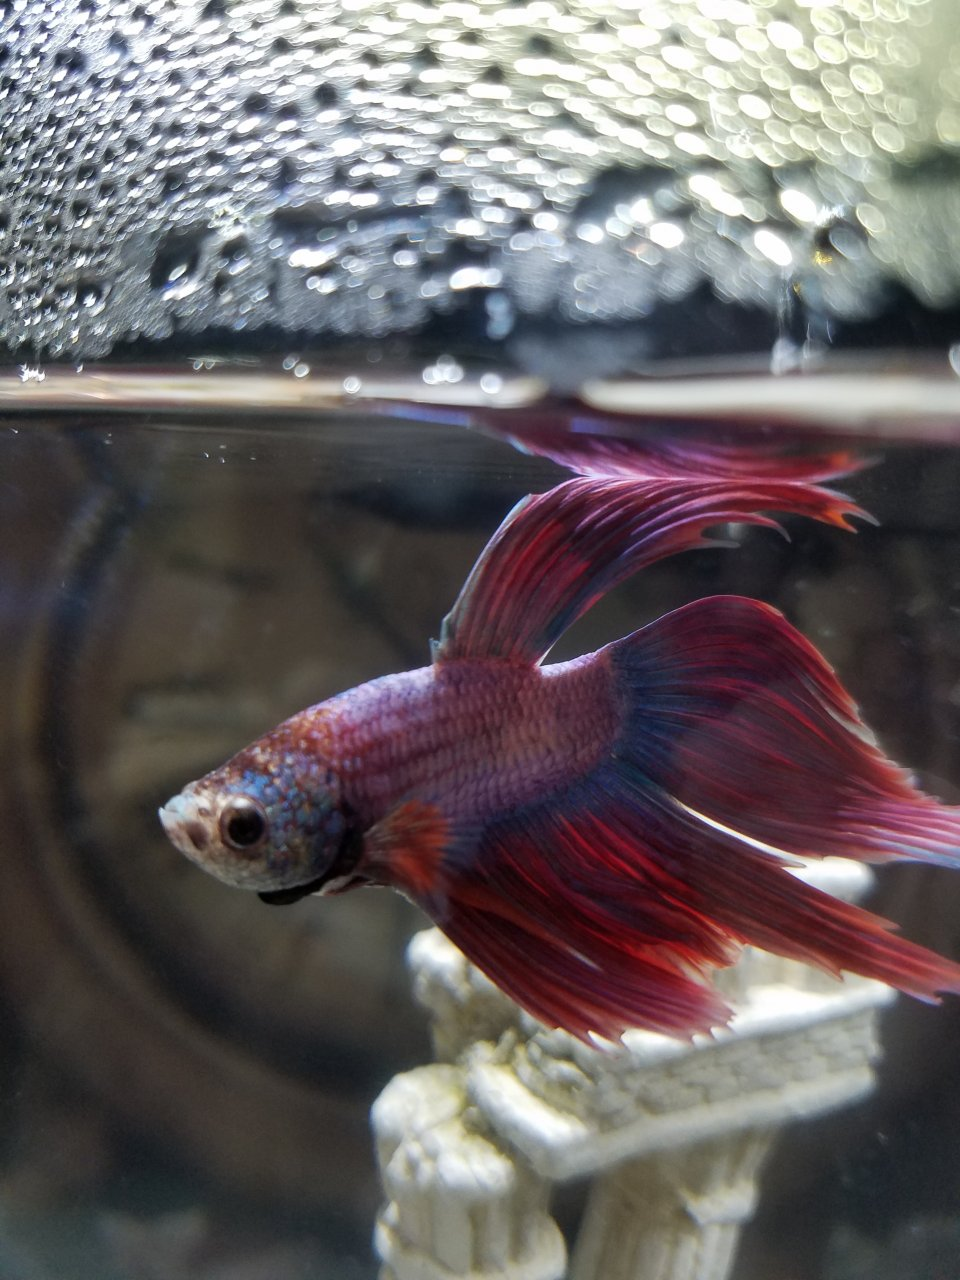 Why do my betta fish keep dying